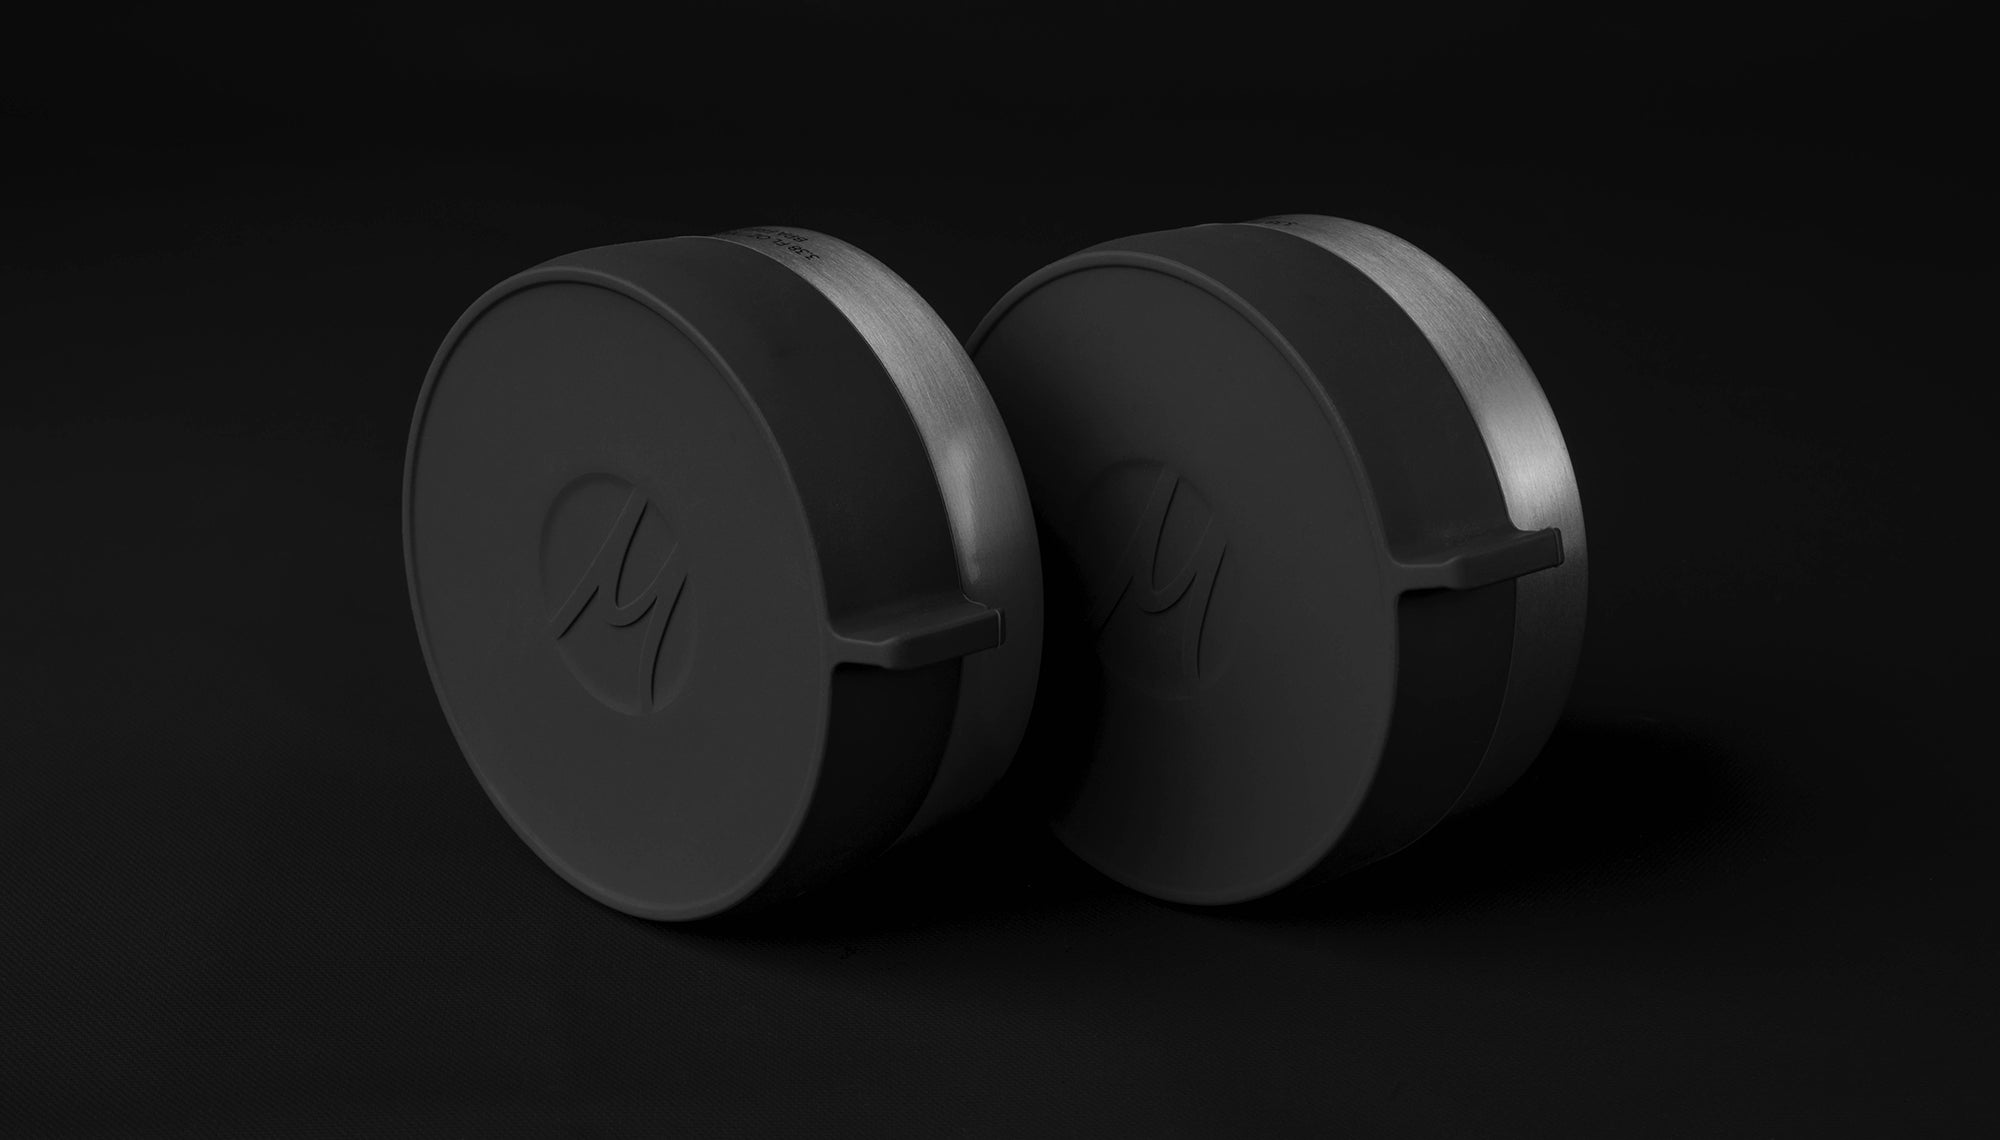 Two canisters on black background